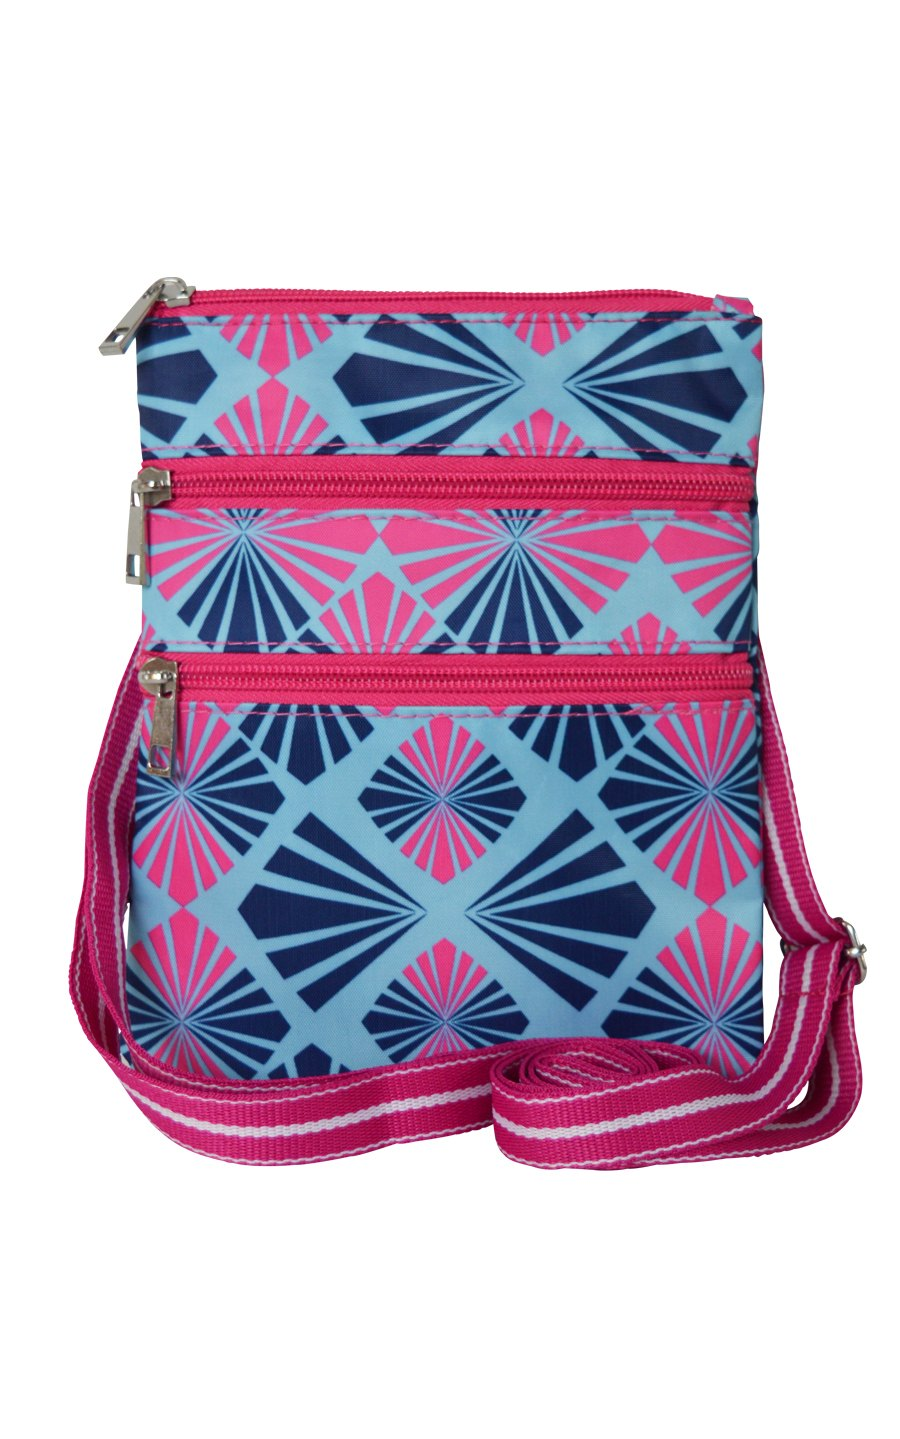 Summer Rays Crossbody Bag